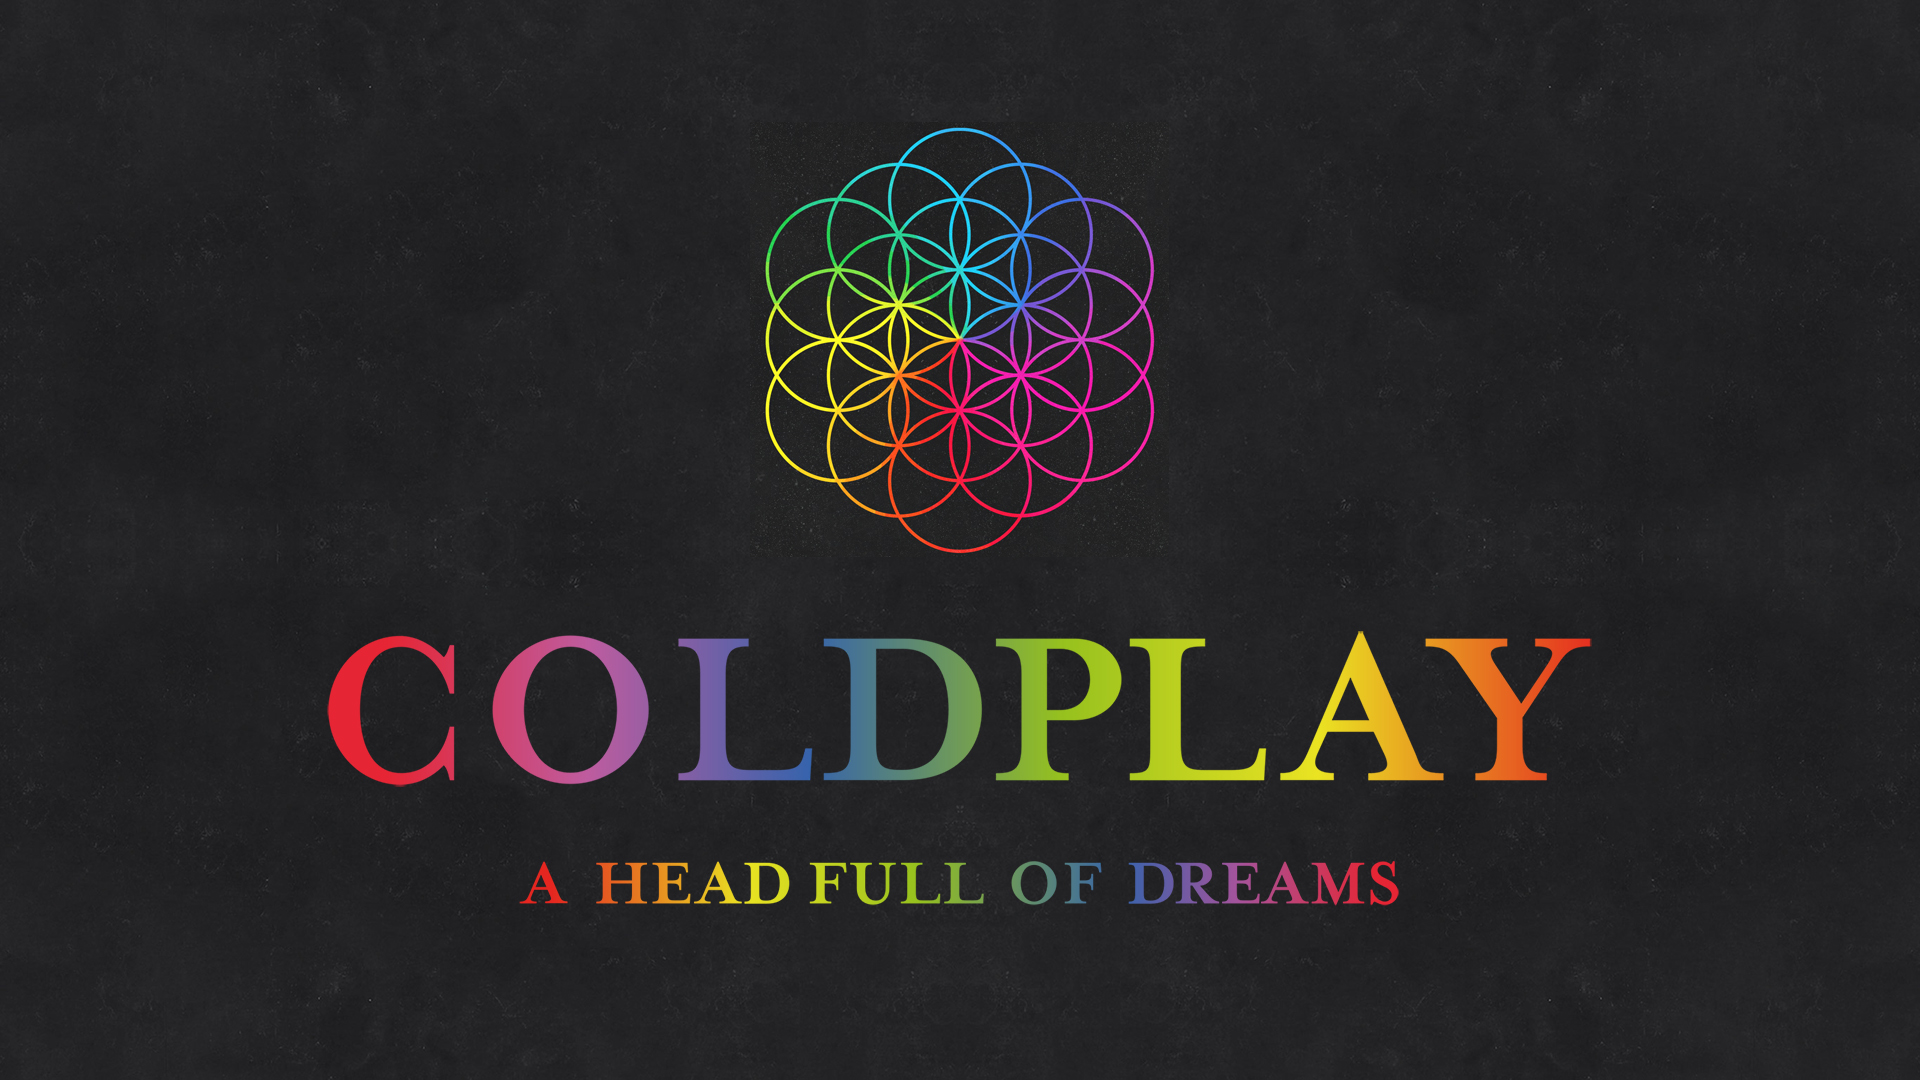 Coldplay a head full of dreams 1